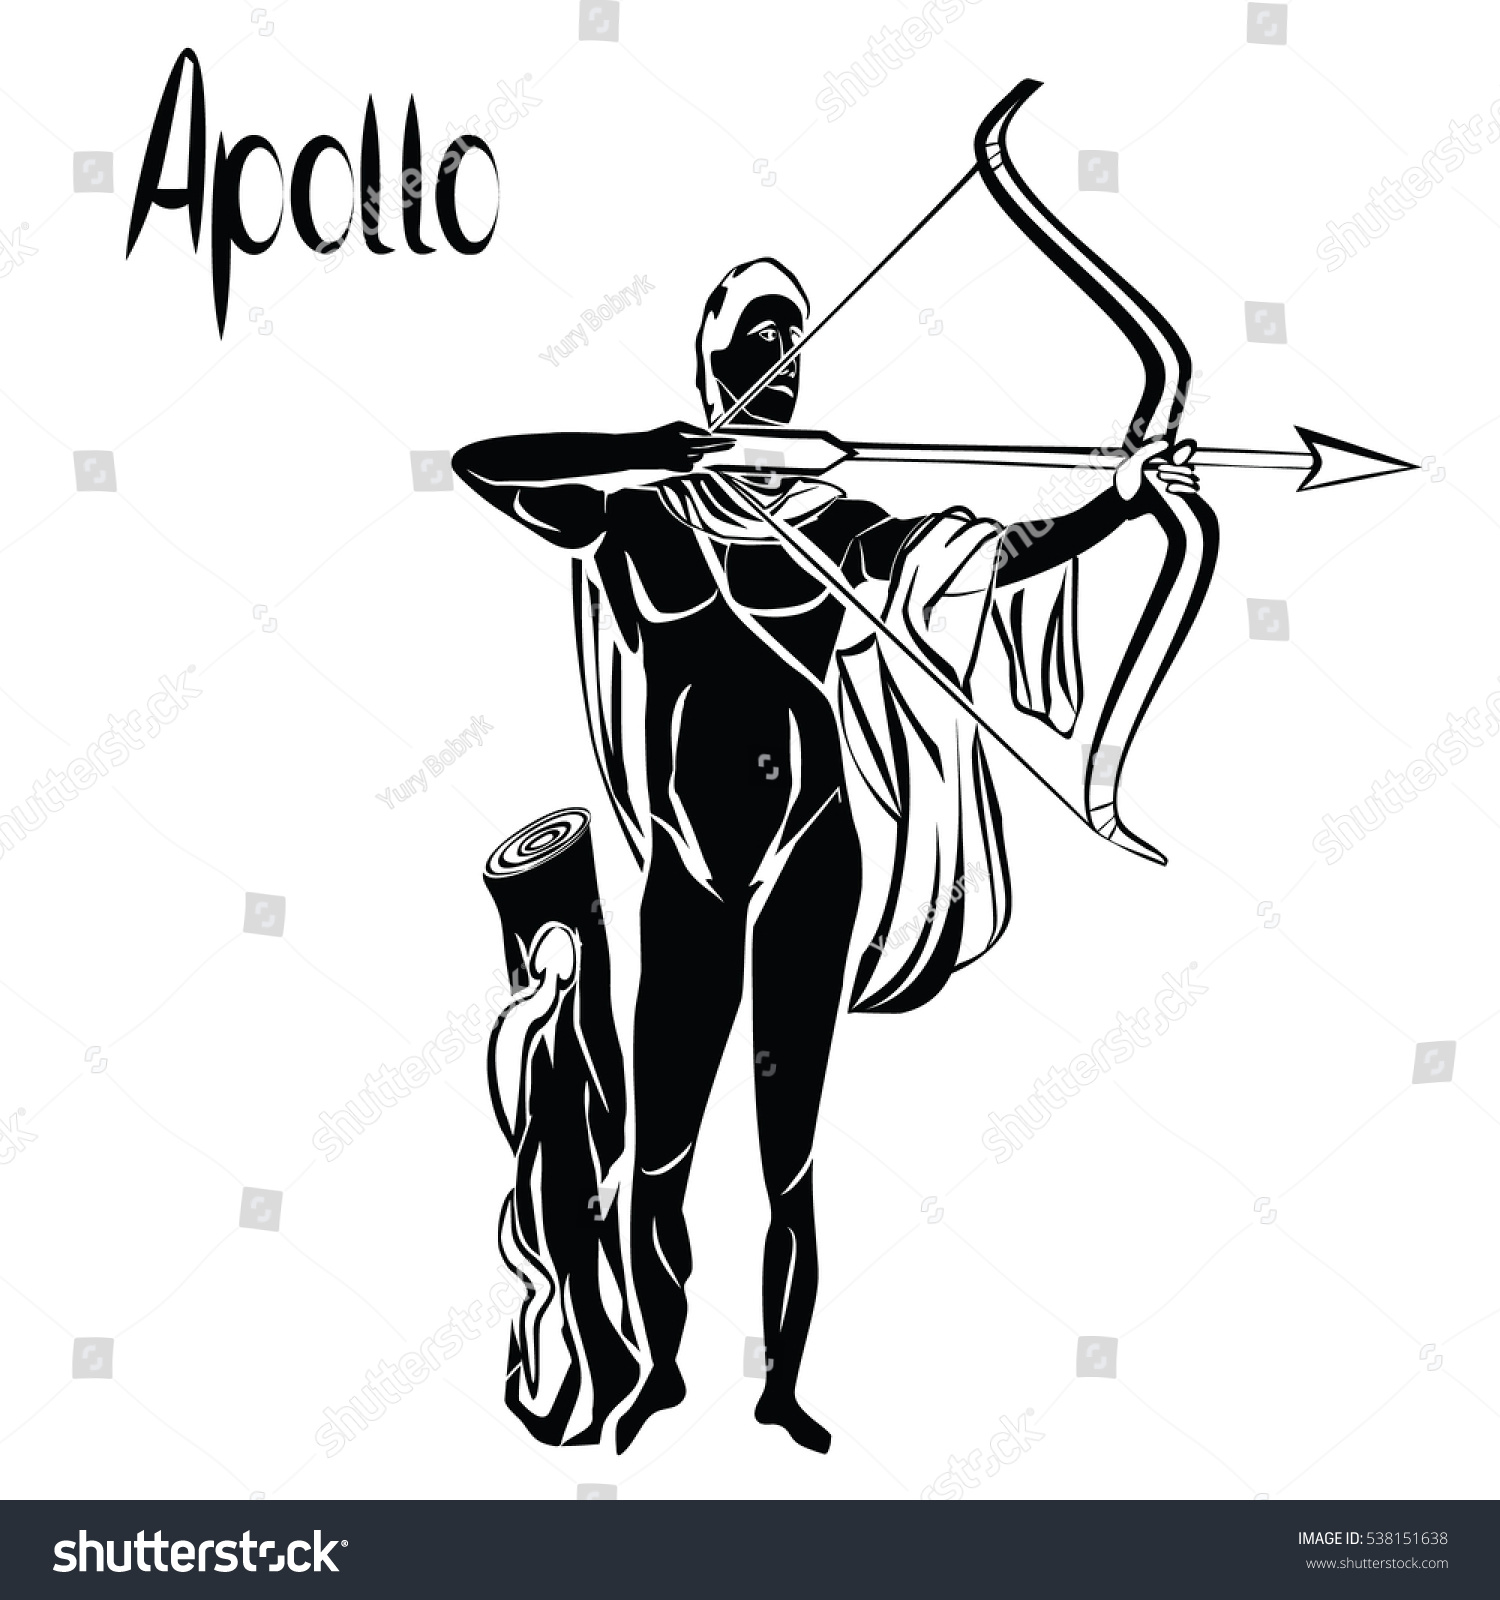 Apollo god bow arrow black vector stock vector 538151638 apollo god with bow and arrow black vector illustration isolated on a white background greek buycottarizona